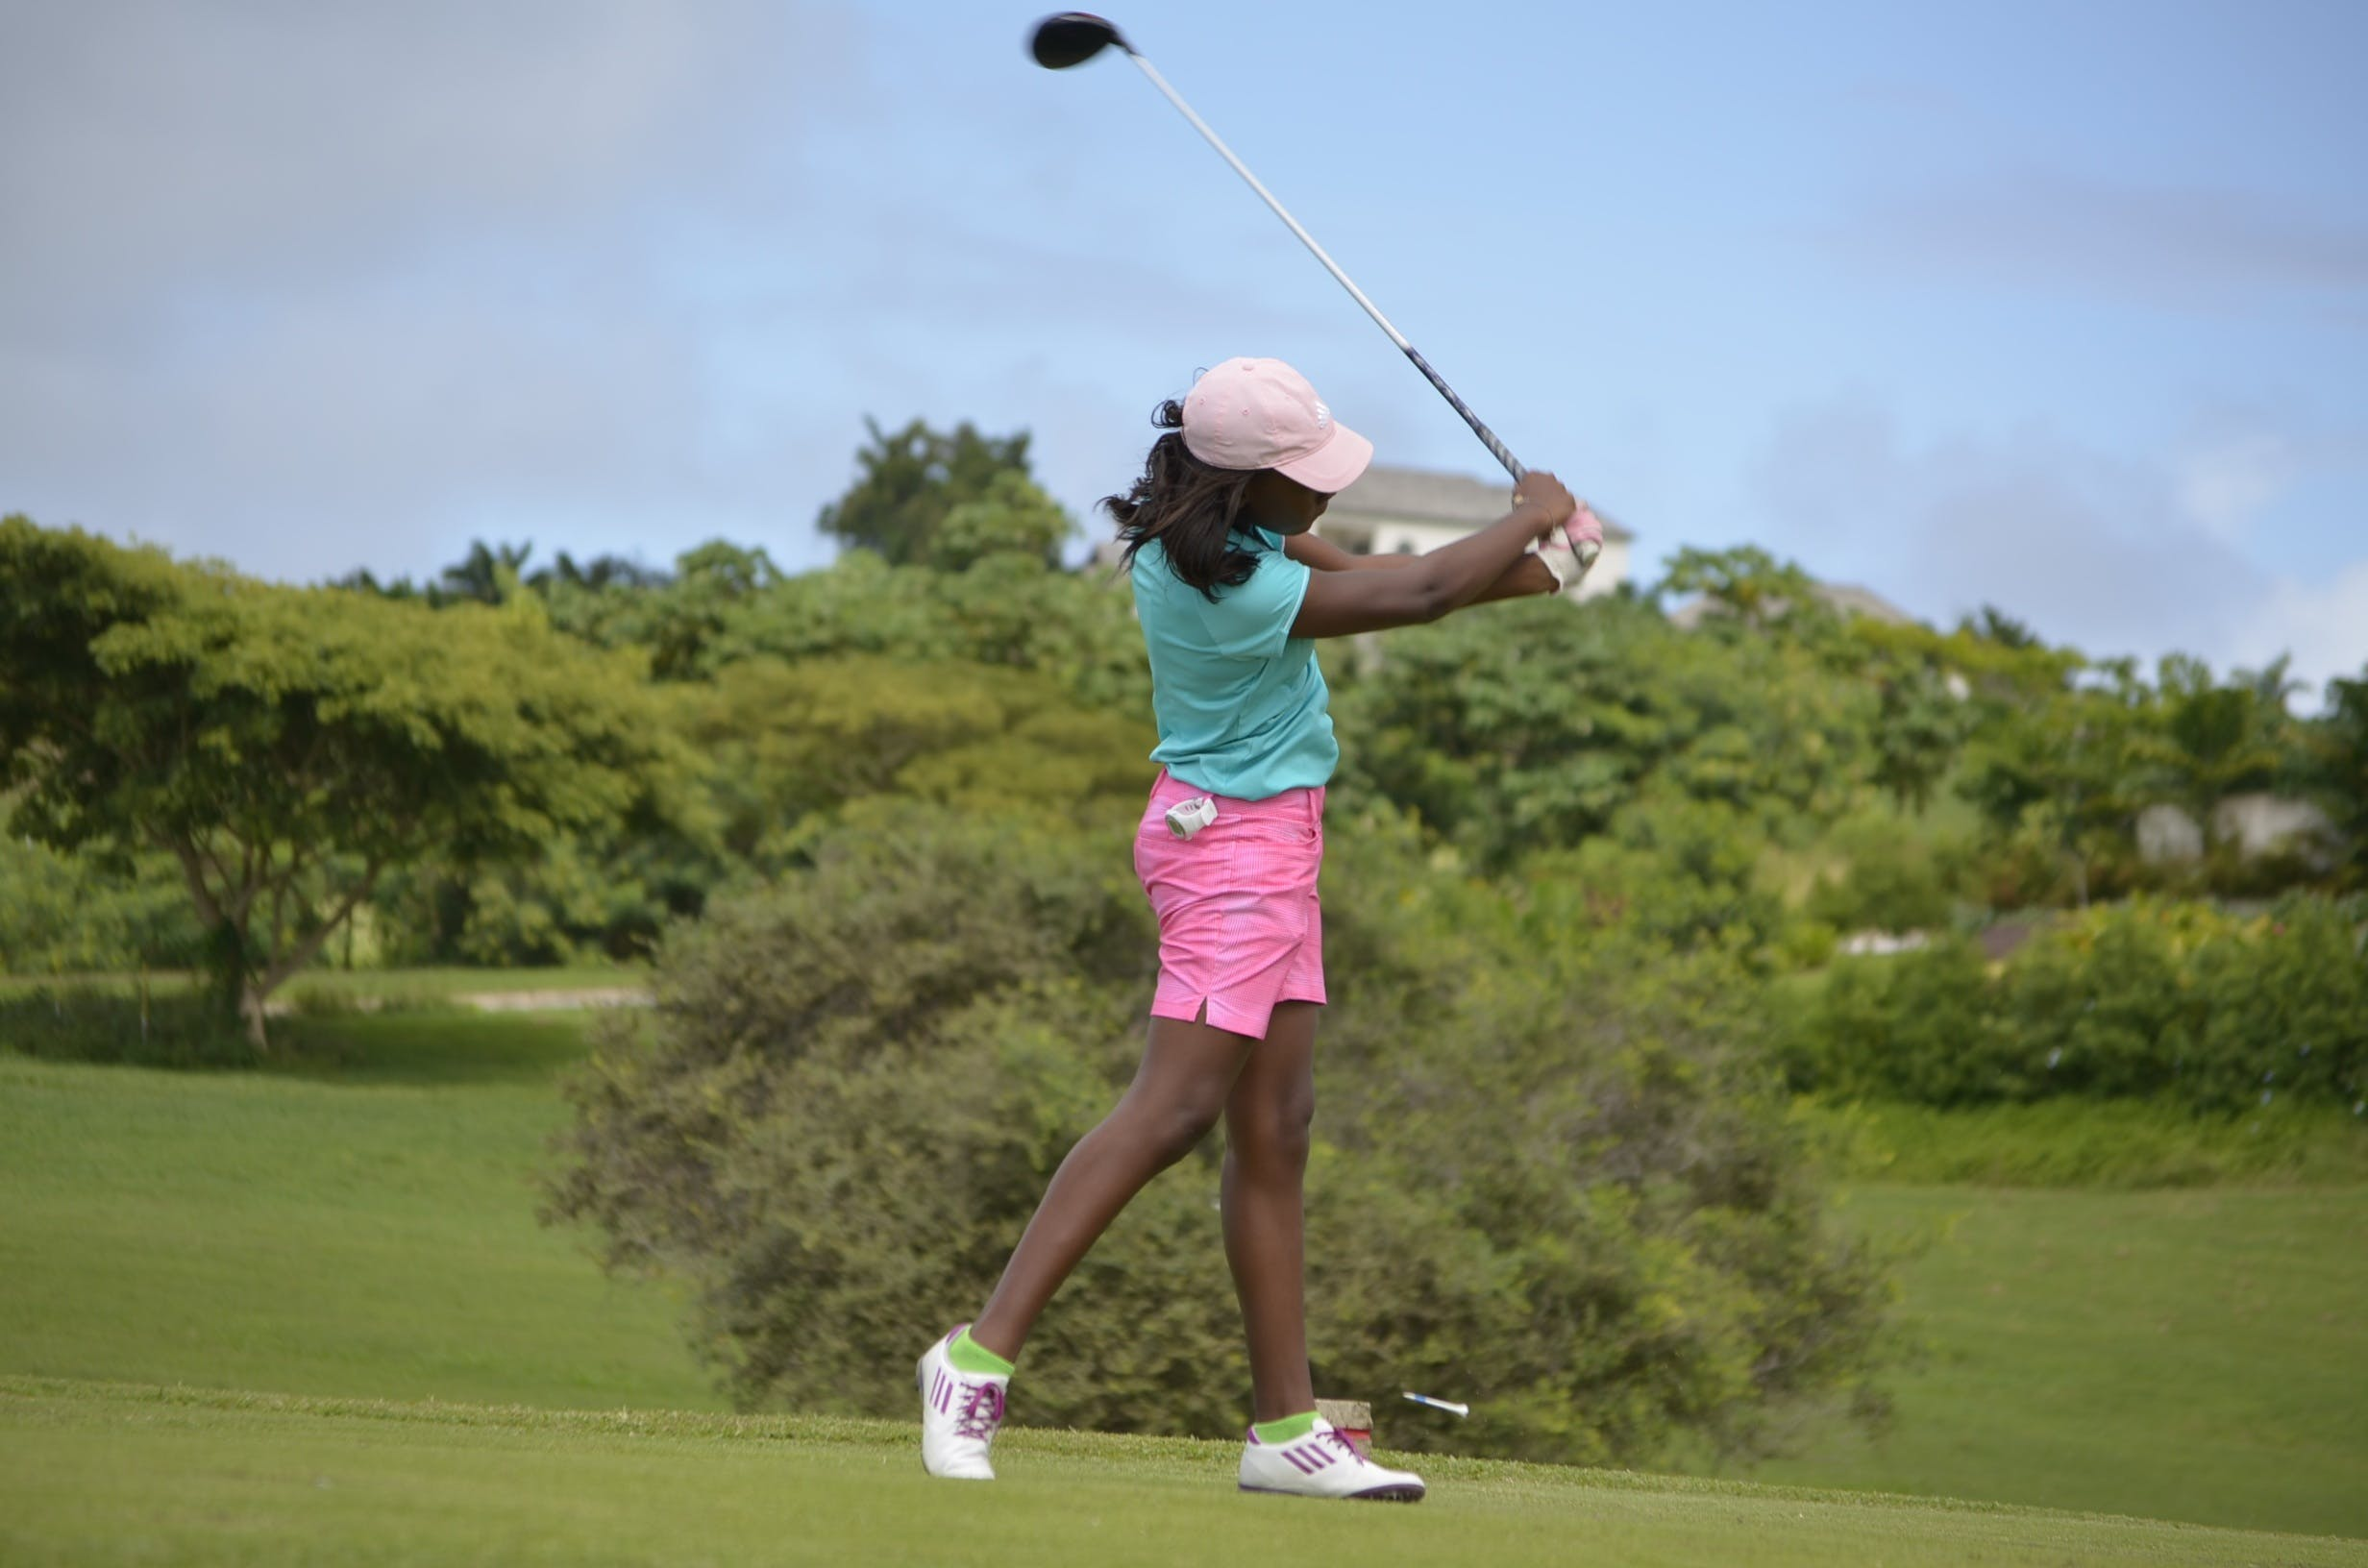 Woman in Green Polo Shirt and Pink Shorts Playing Golf Under Grey and Blue Skies during Daytime